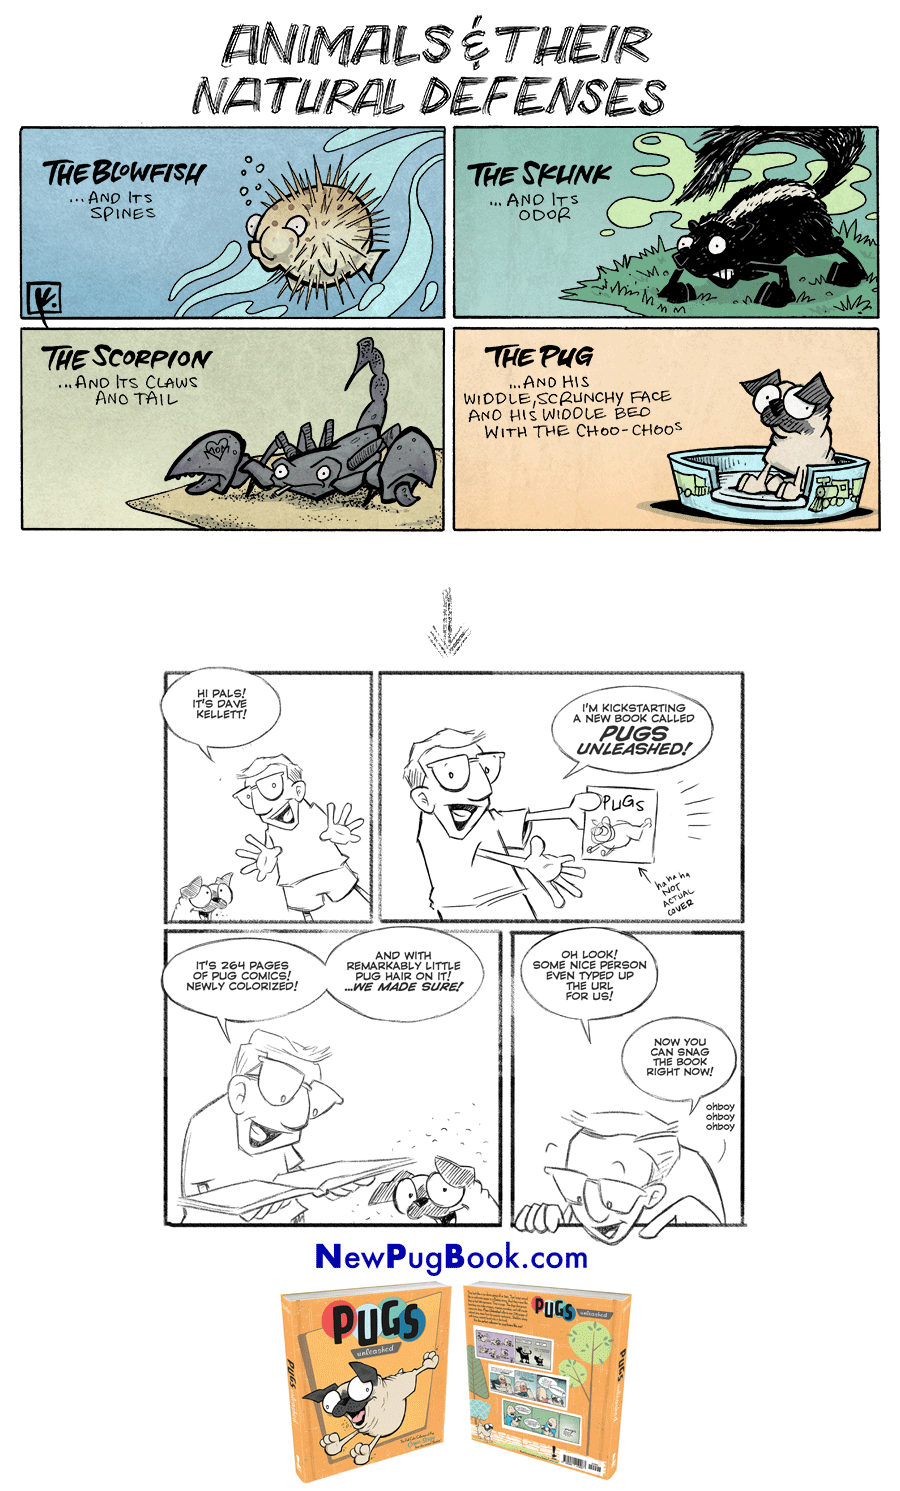 strip for February / 21 / 2018 - Animals and their Defenses